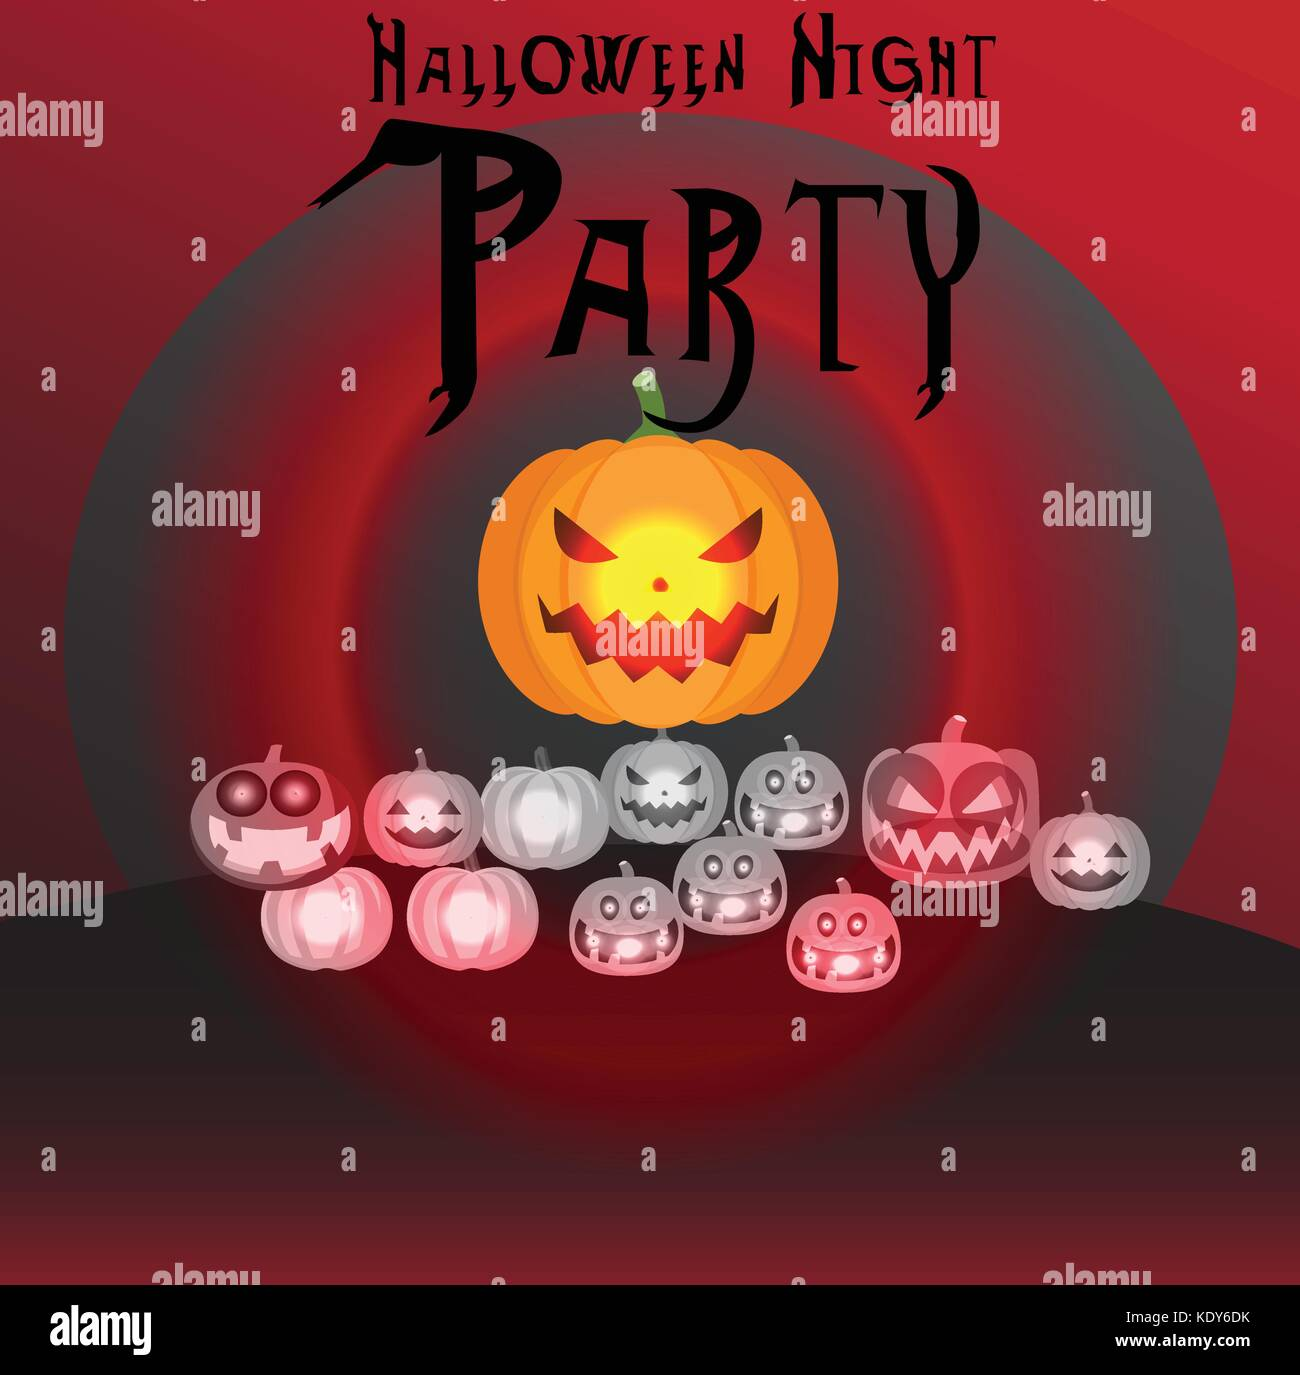 Artiste : dulyapon somsri ; soir de l'halloween party poster, contexte, contexte, carte postale, invitation Photo Stock